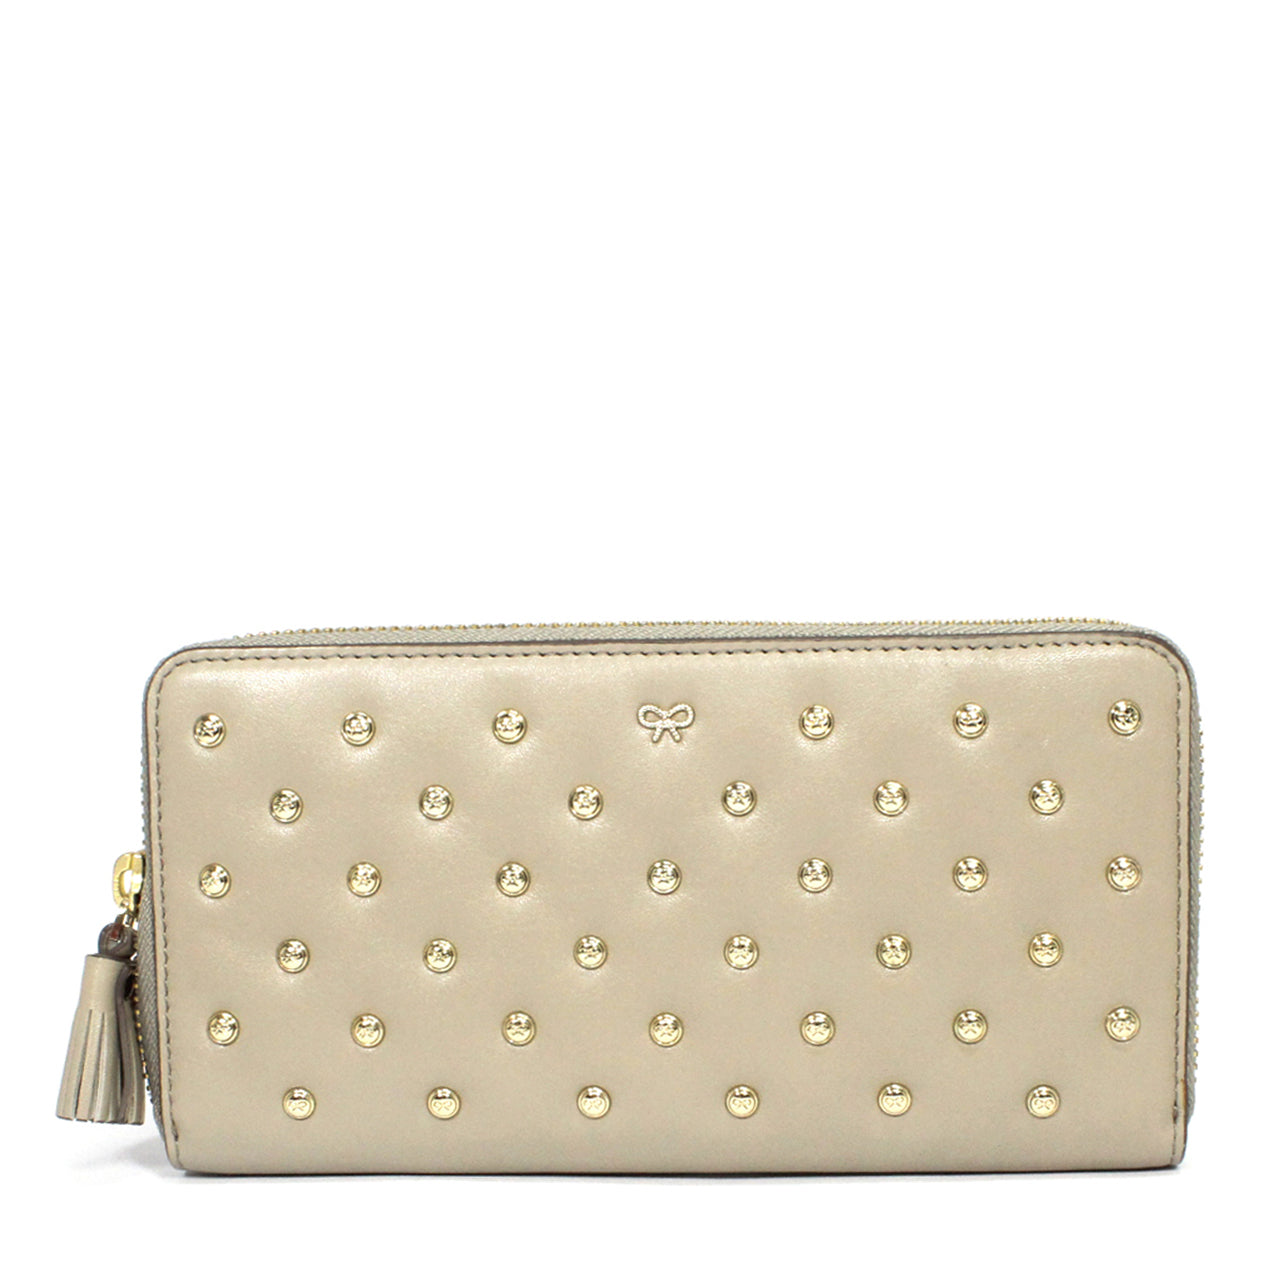 Anya Hindmarch Joss Heart-Studded Leather Wallet